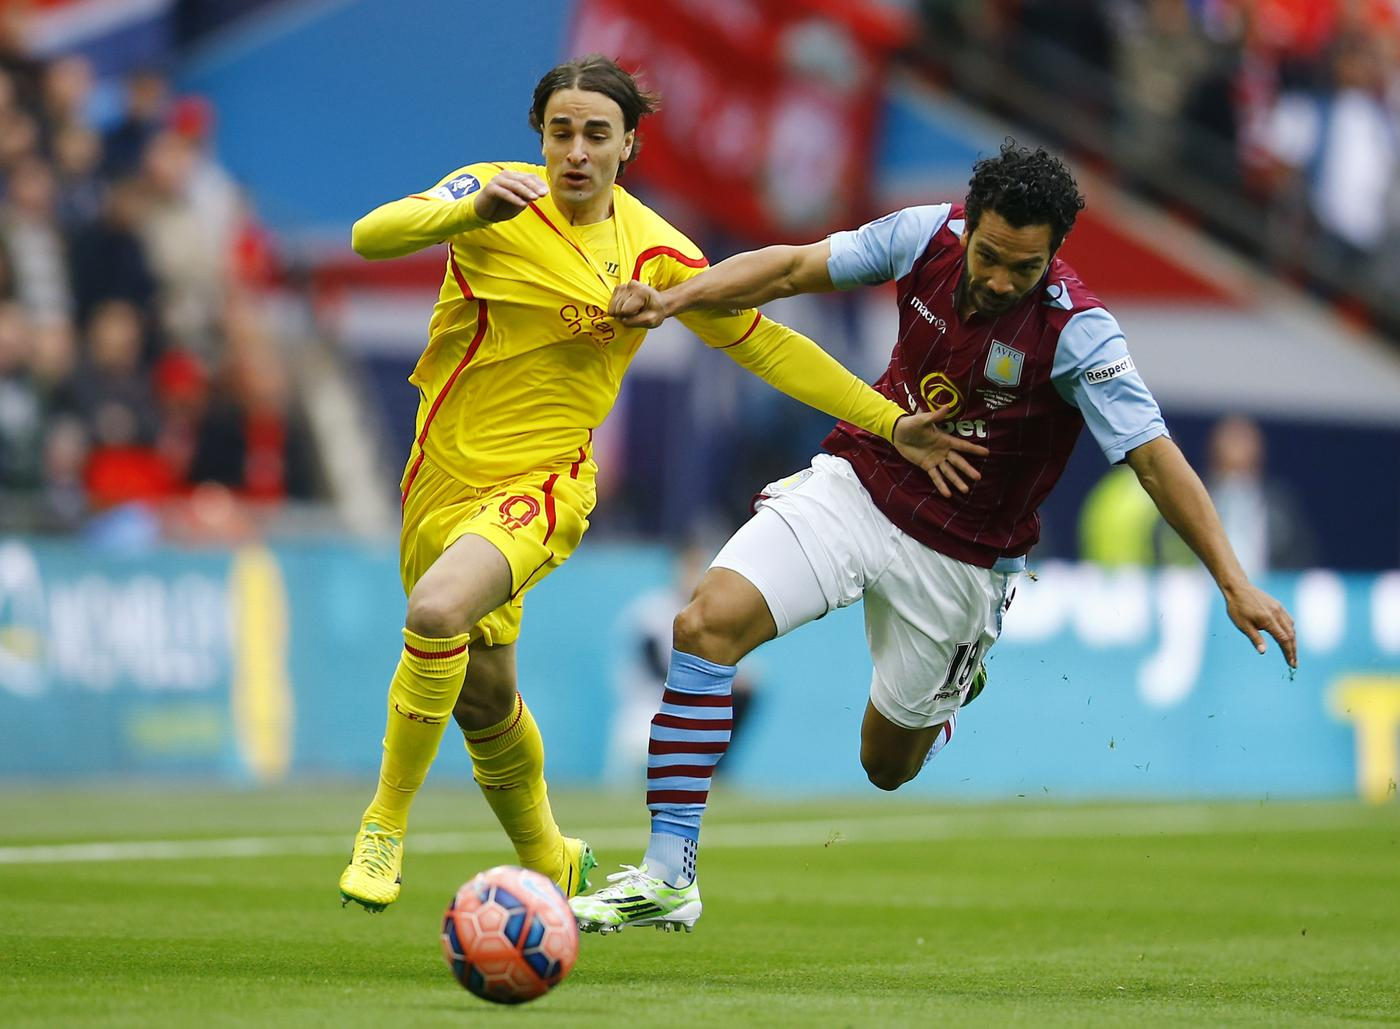 """Football - Aston Villa v Liverpool - FA Cup Semi Final - Wembley Stadium - 19/4/15 Liverpool's Lazar Markovic in action with Aston Villa's Kieran Richardson Reuters / Darren Staples Livepic EDITORIAL USE ONLY. No use with unauthorized audio, video, data, fixture lists, club/league logos or """"live"""" services. Online in-match use limited to 45 images, no video emulation. No use in betting, games or single club/league/player publications. Please contact your account representative for further details. Darren Staples/Reuters"""